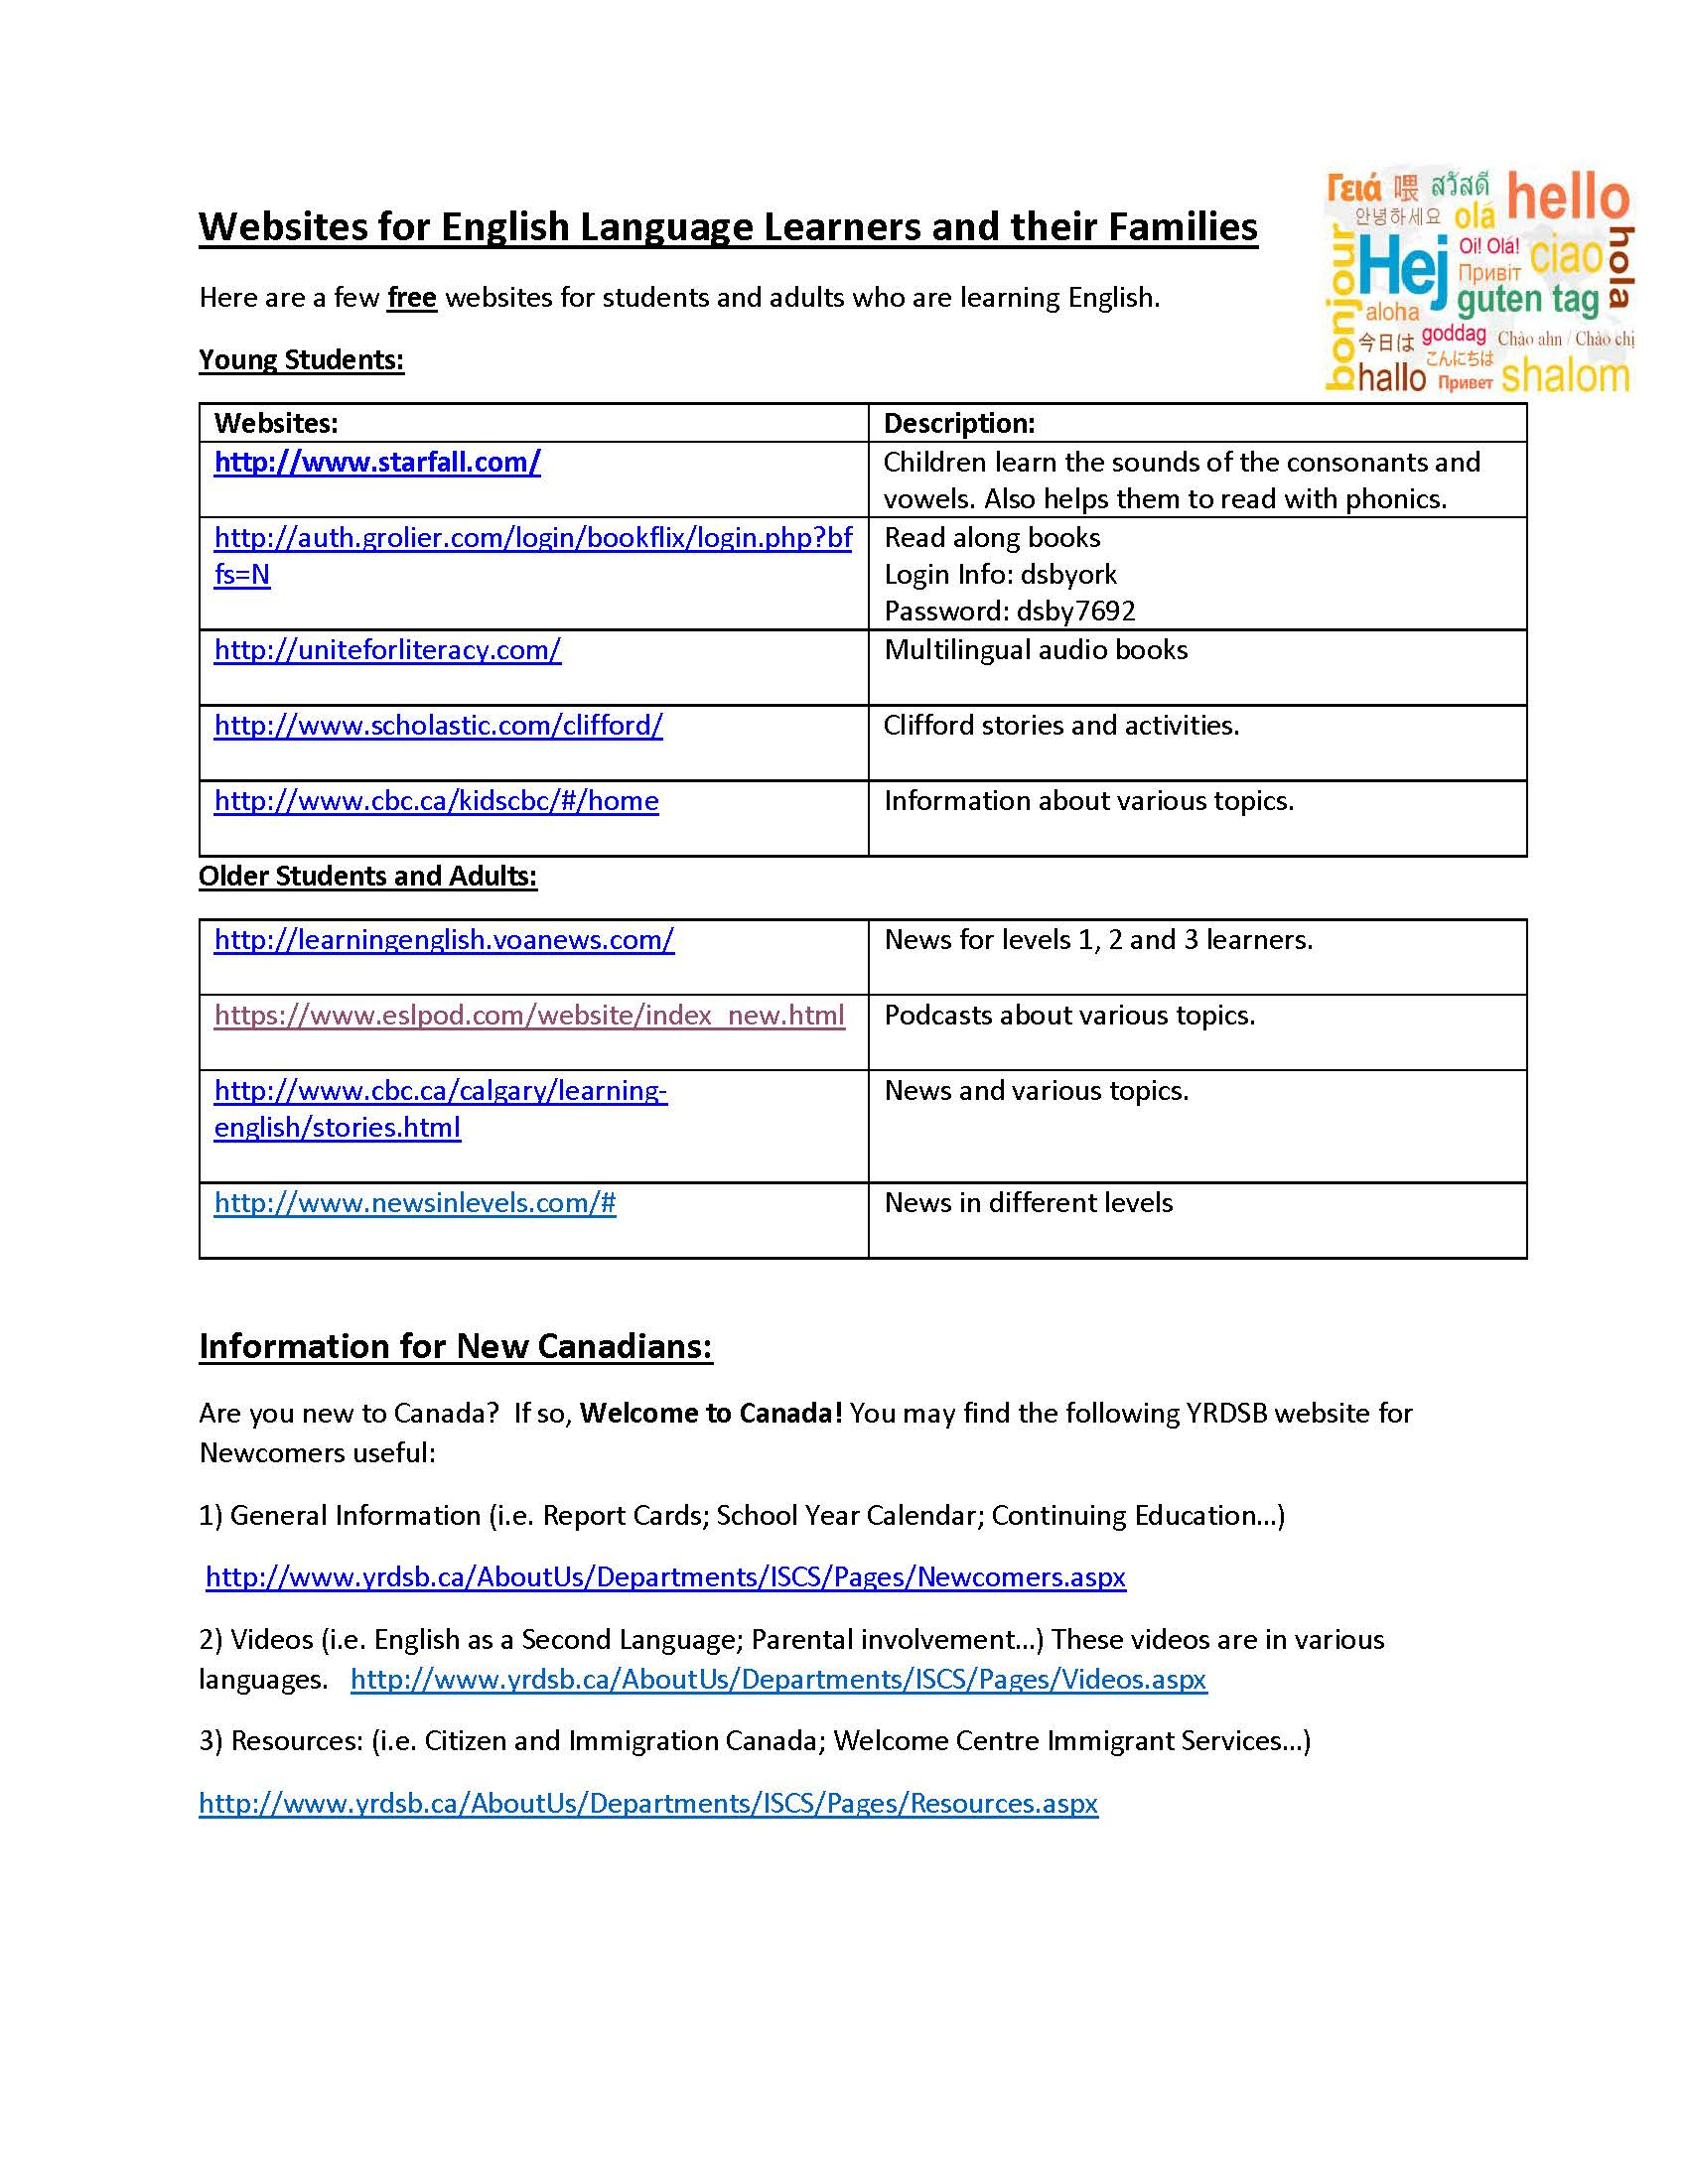 Websites for ELL students and adults